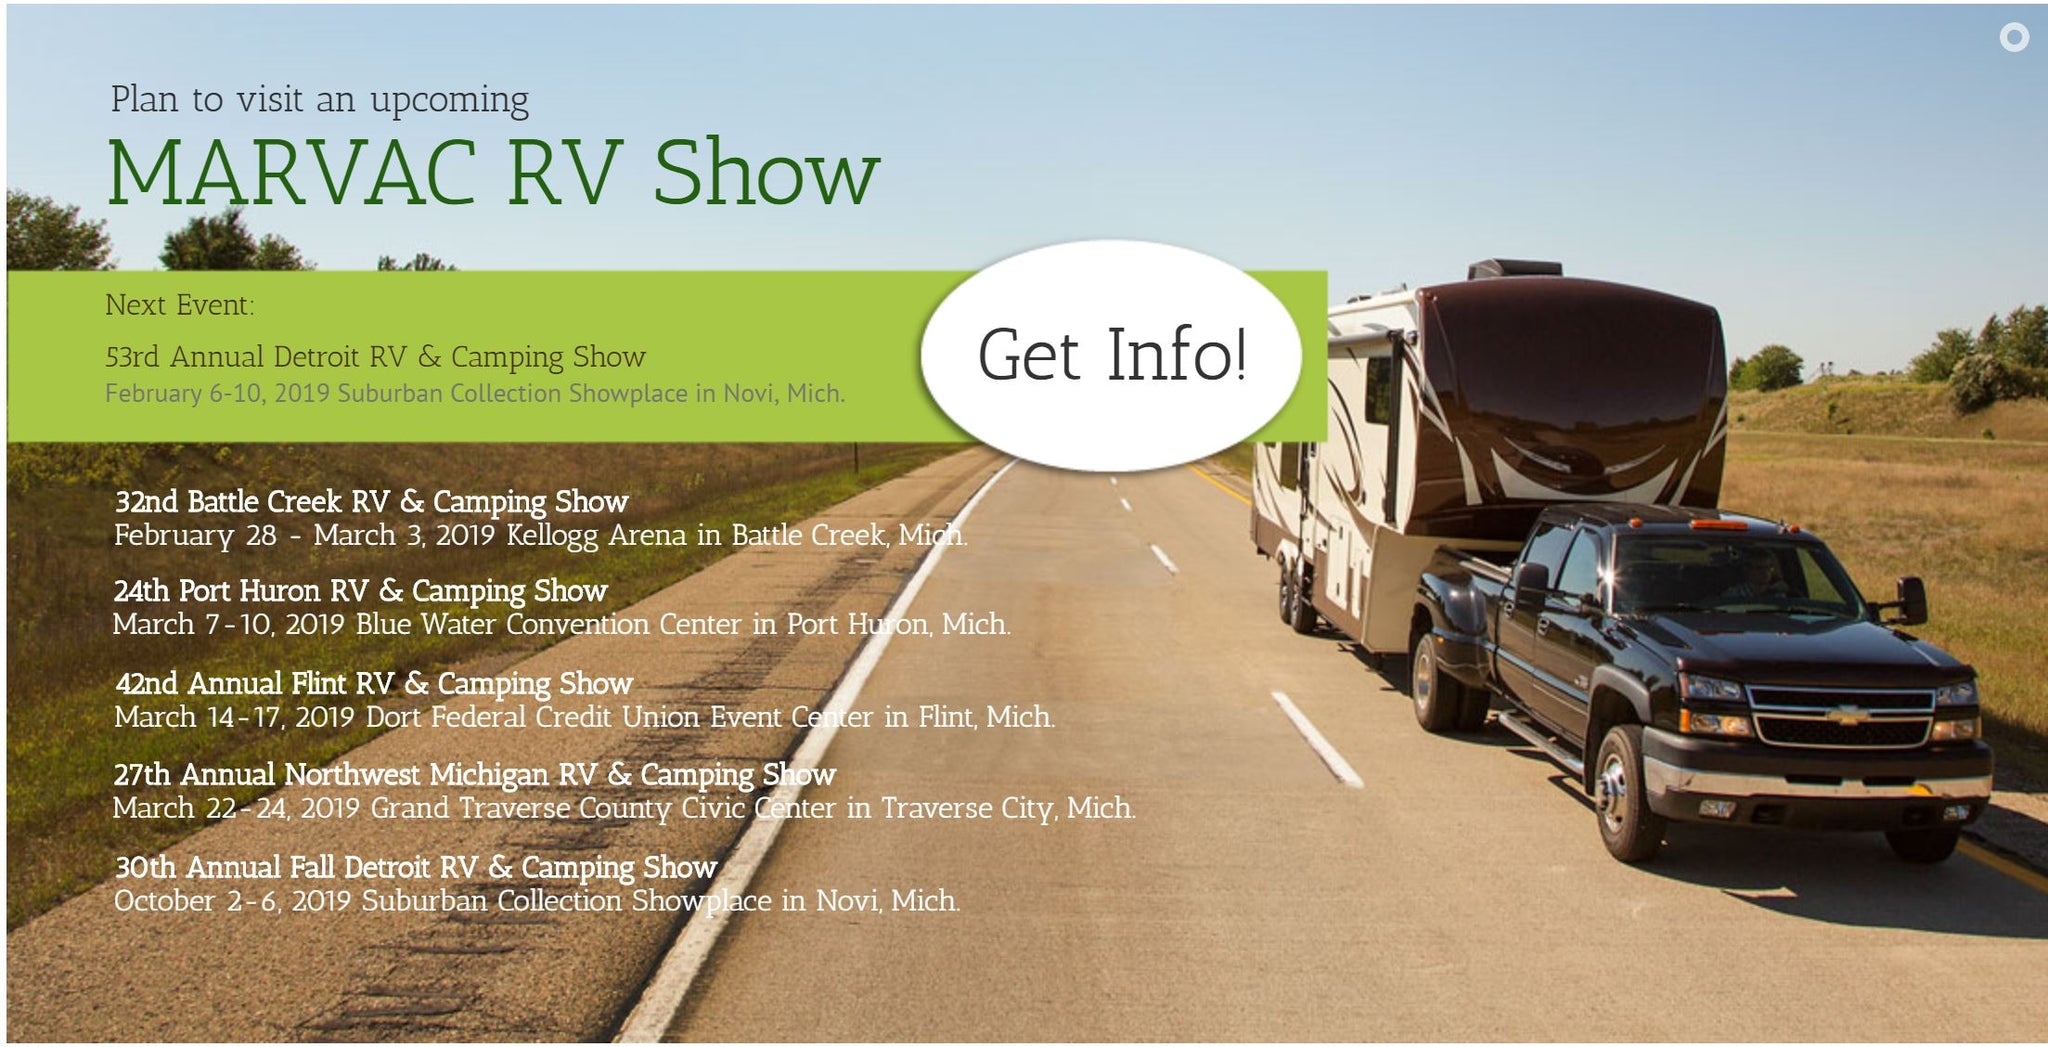 February 2019 - Come visit us at the 53rd Annual Detroit RV & Camping Show @ Suburban Collection Showplace